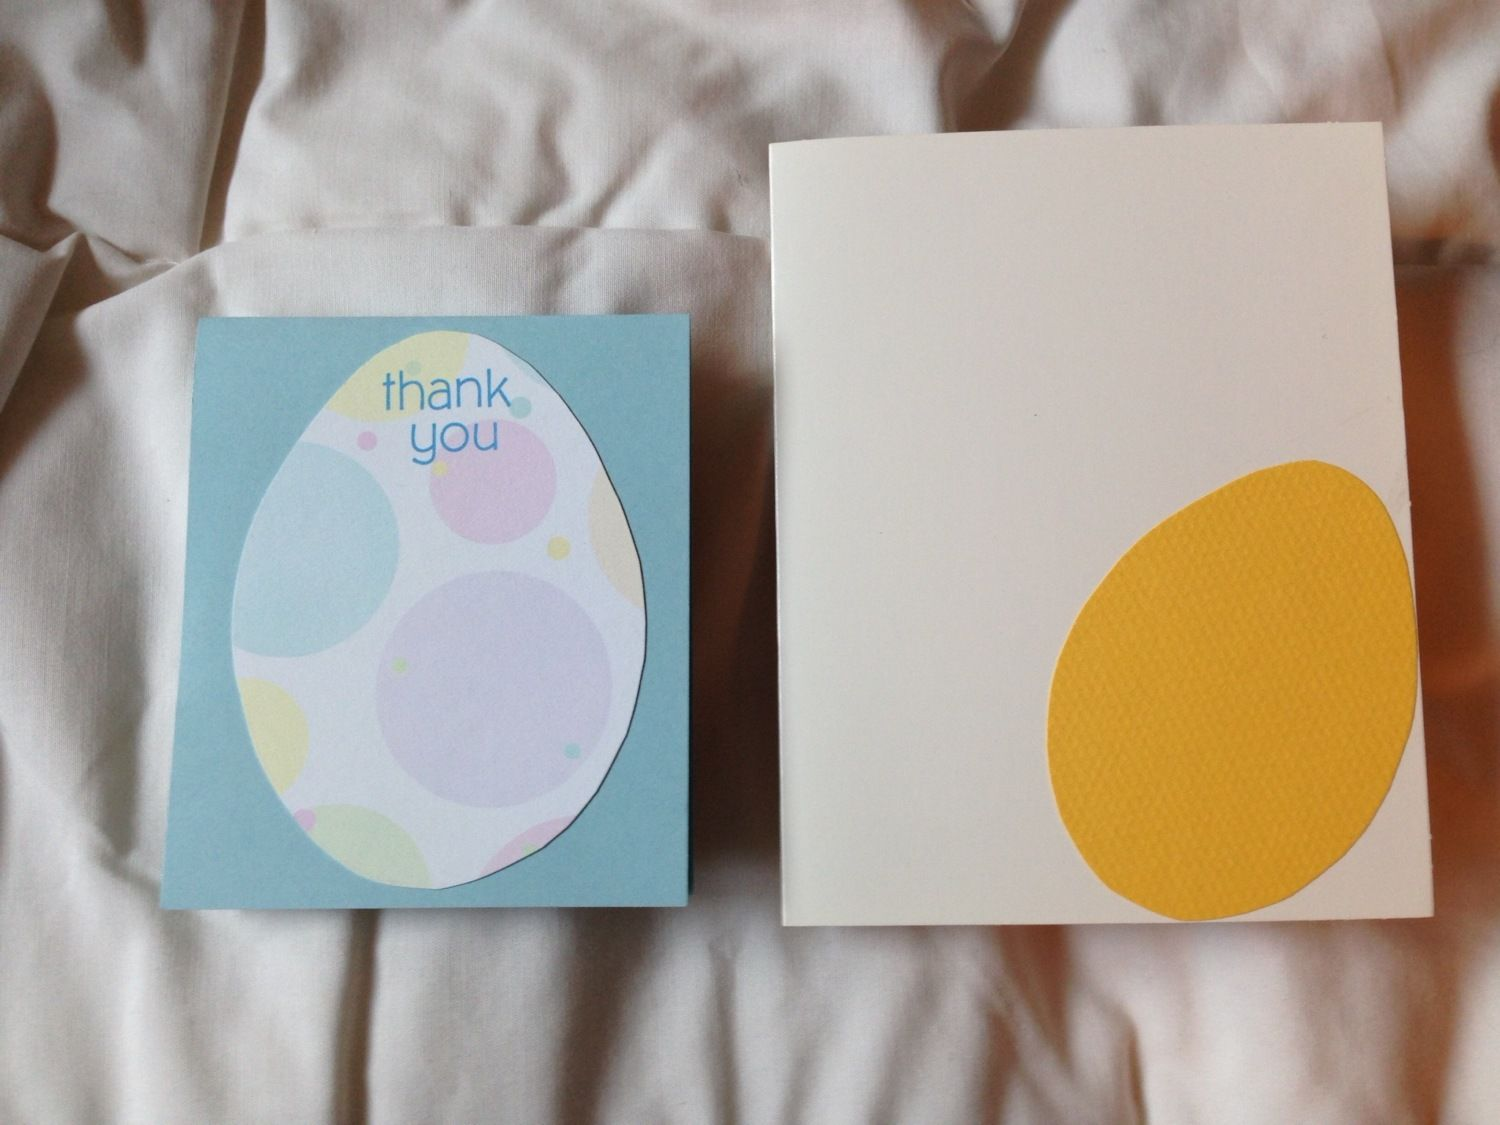 Thank-you cards I made for friends who took care of my hens while I was on a trip